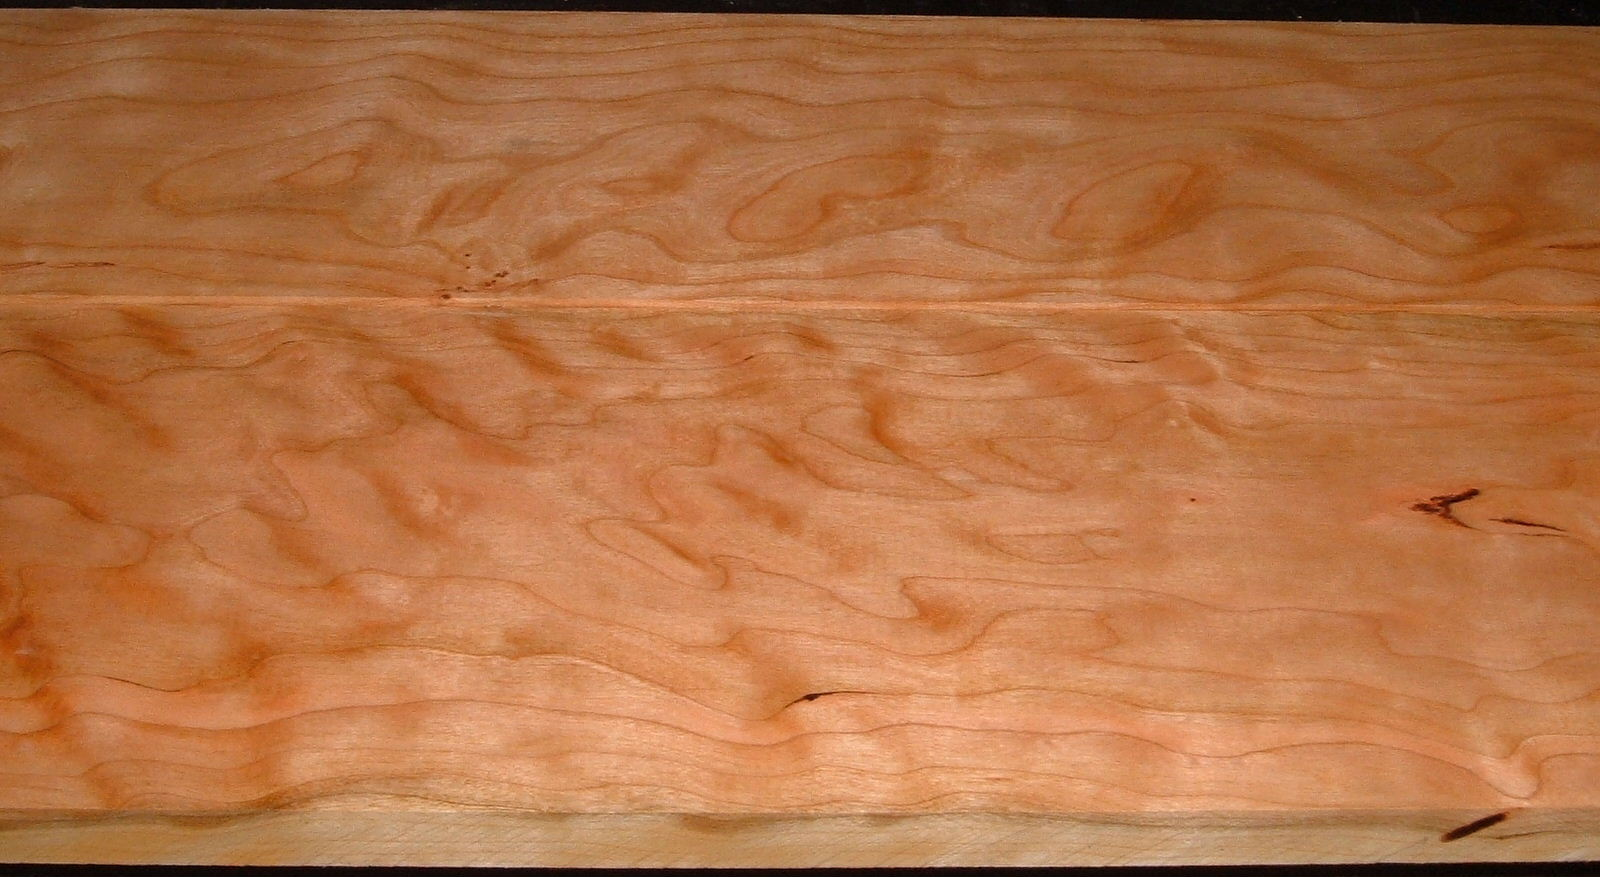 C2011-162, 2 bd, 13/16x6-3/4x47, 15/16x5-5/8x47, Curly Cherry, Cut from the same plank